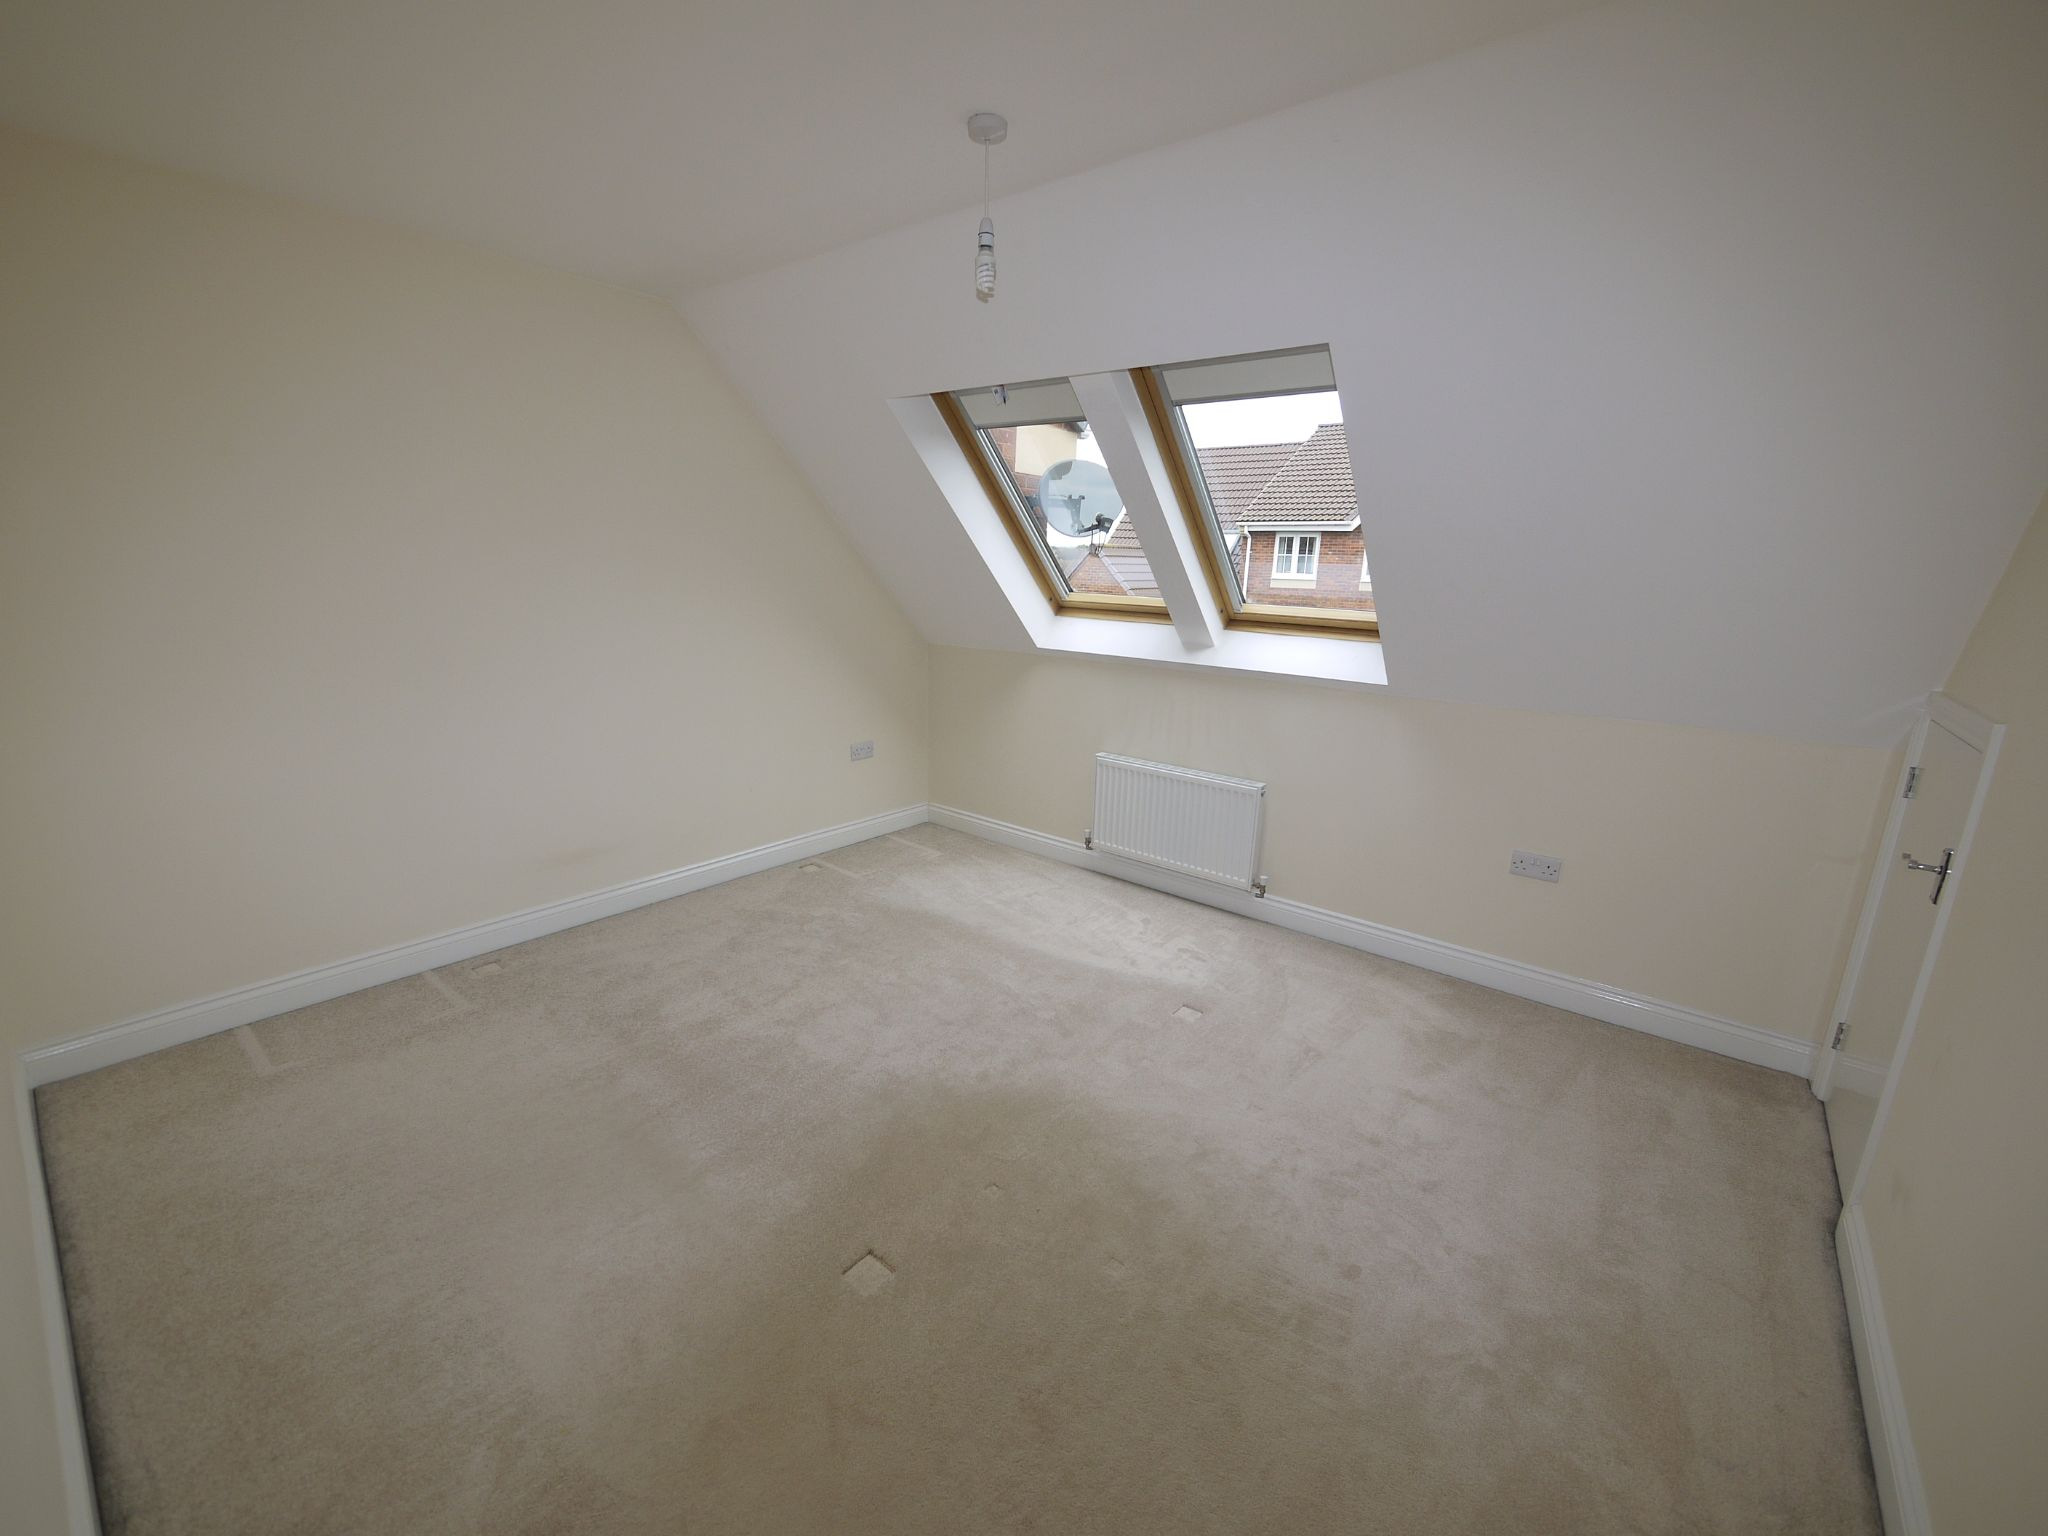 3 bedroom town house SSTC in Mirfield - Photograph 6.